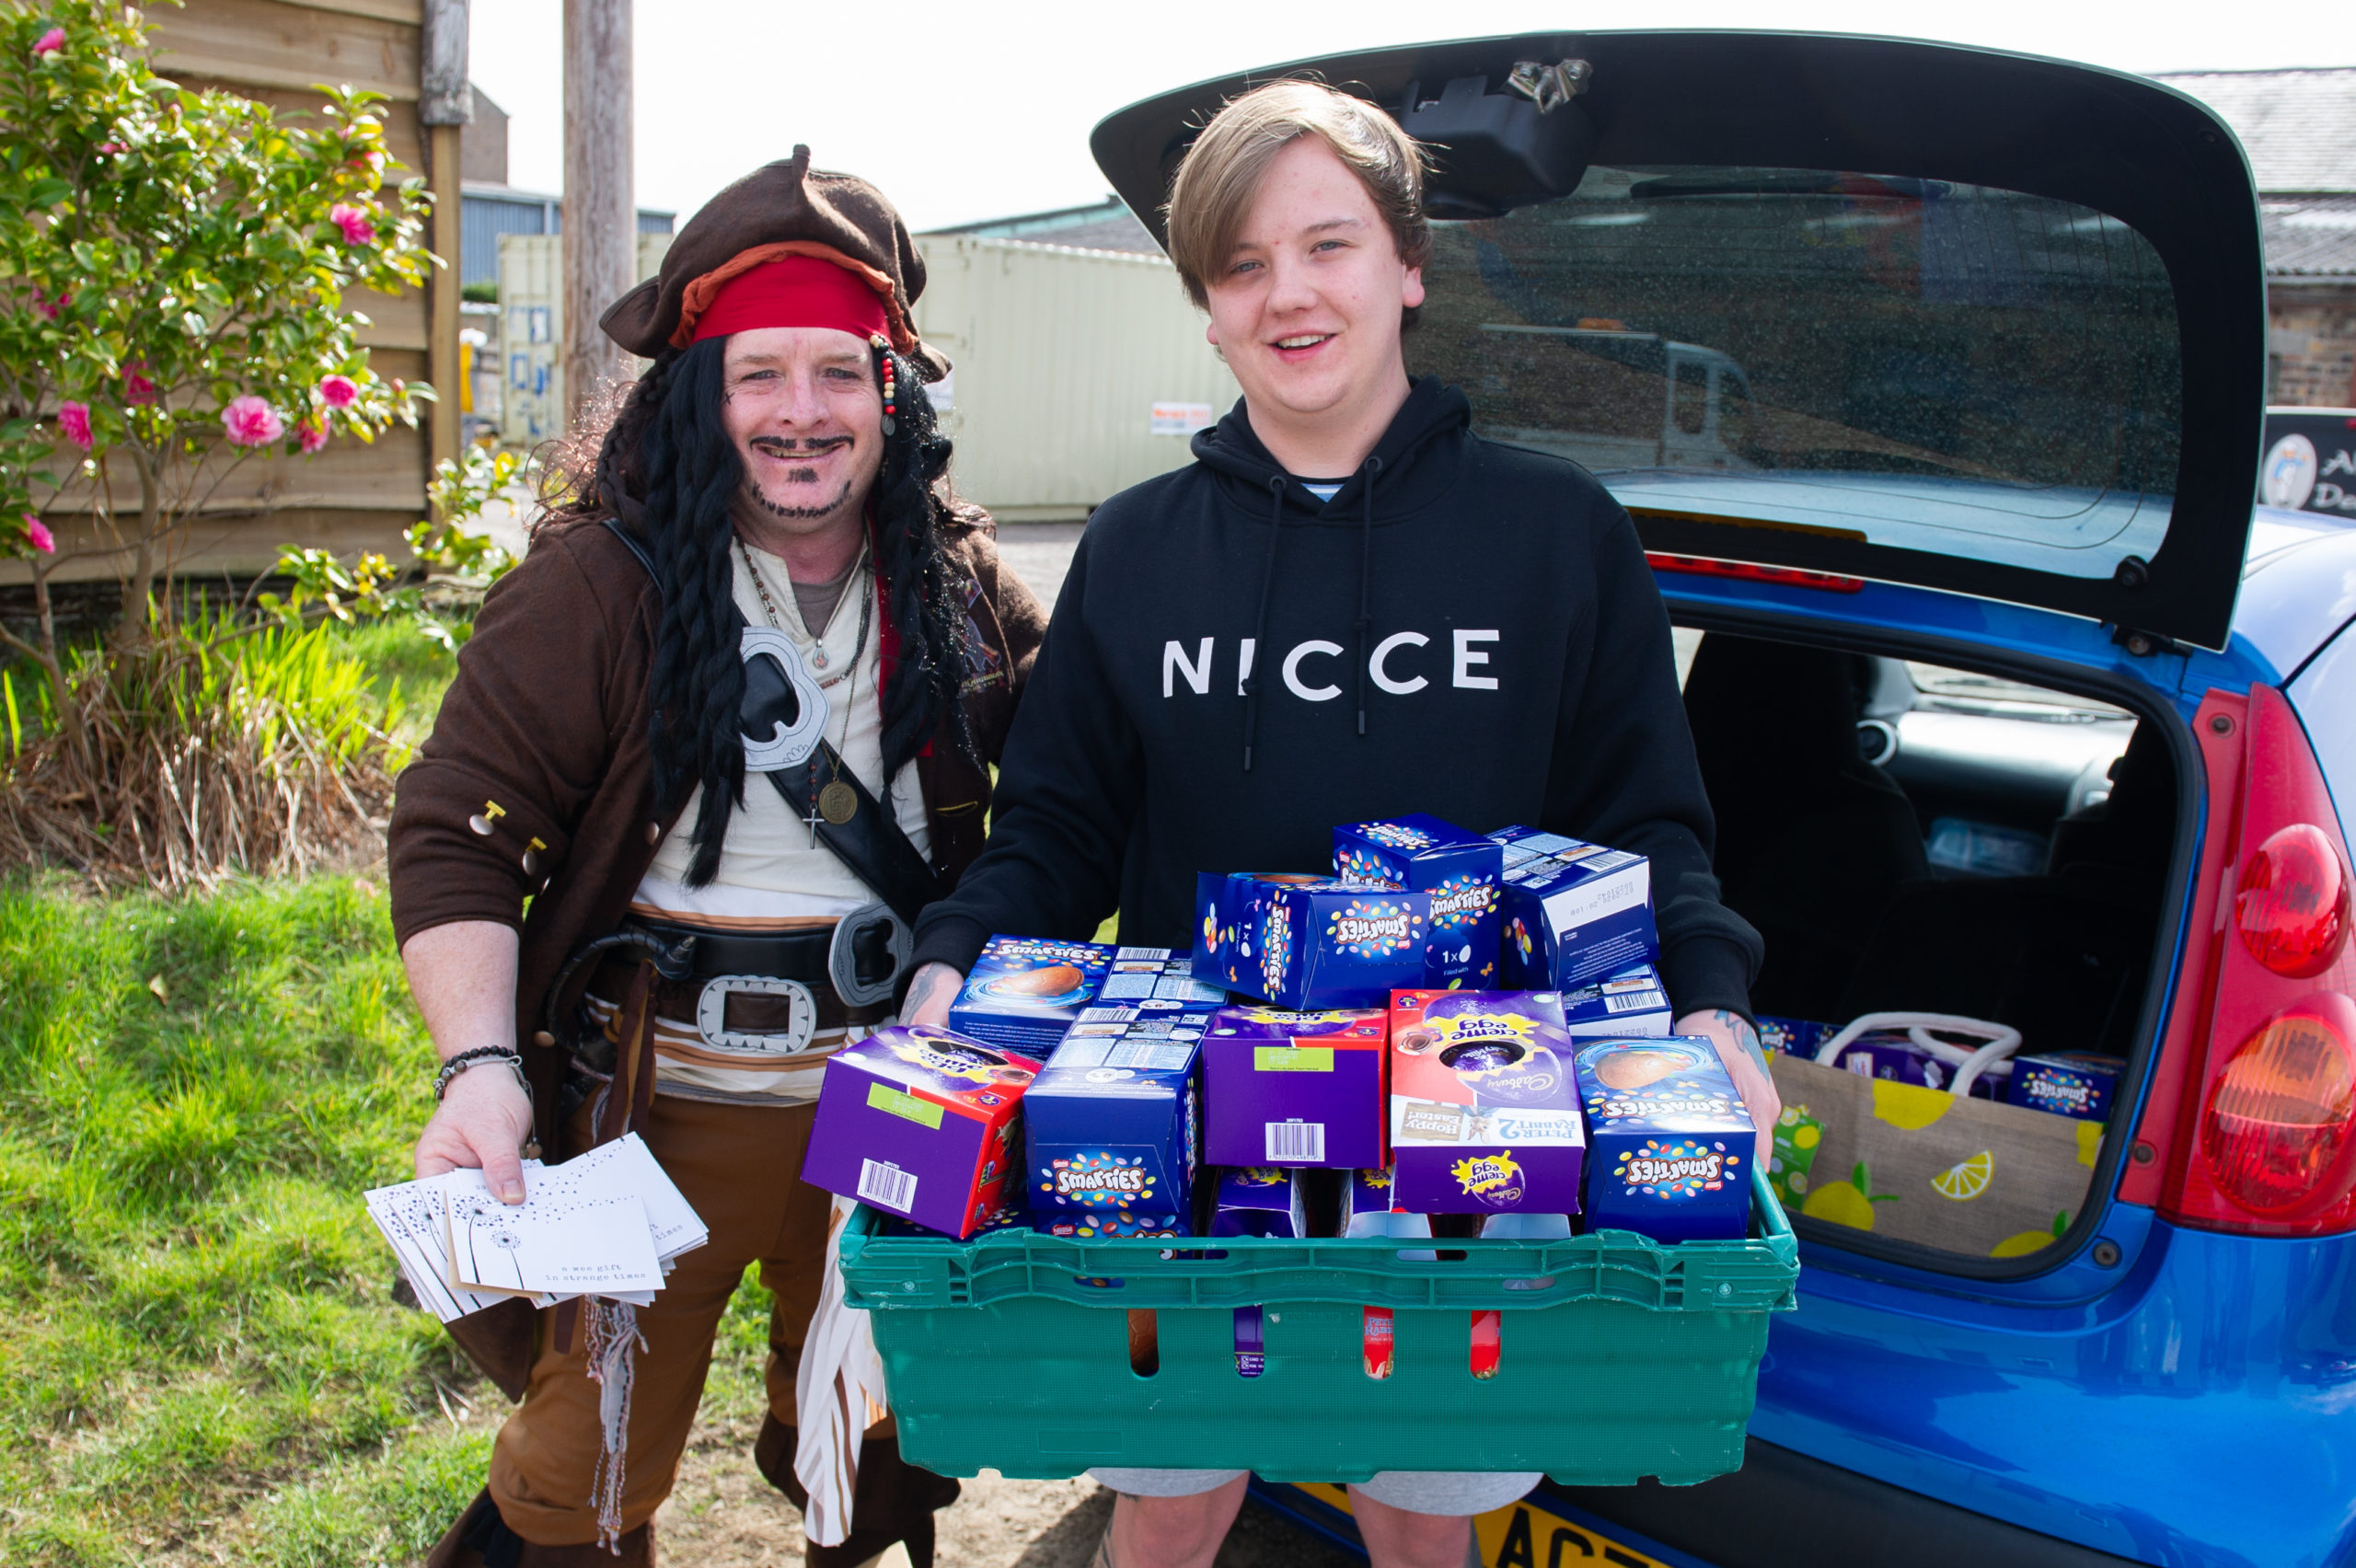 Richard Tart (aka Captain Jack Sparrow) and Lee Mills loading the Easter Eggs ready for distributing in the Linlathen.